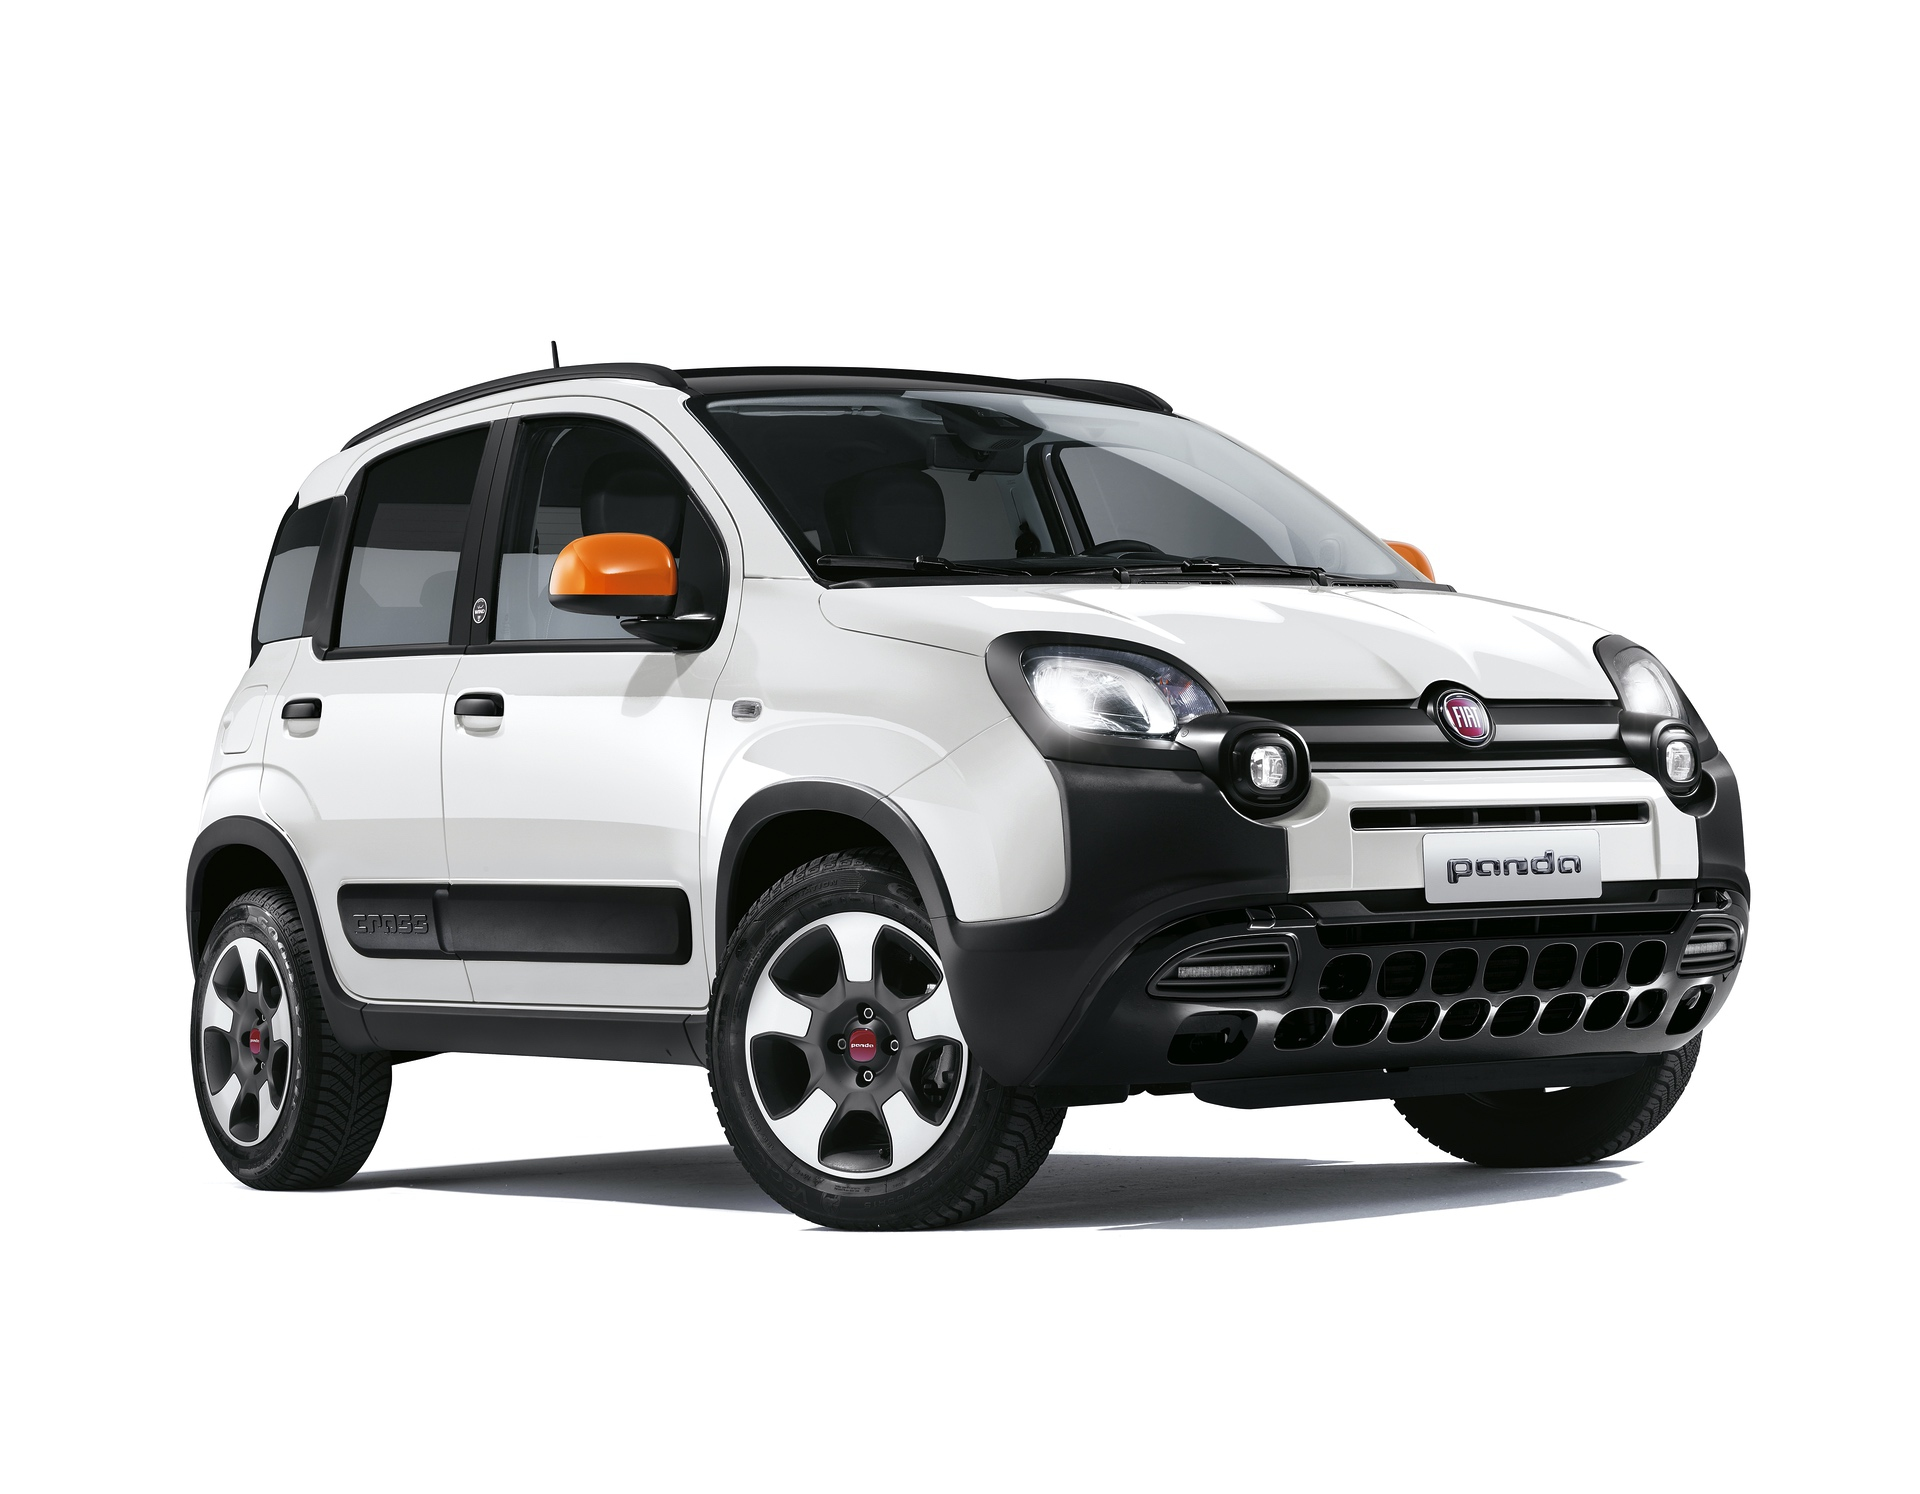 190225_Fiat_Panda-connected-by-Wind_01